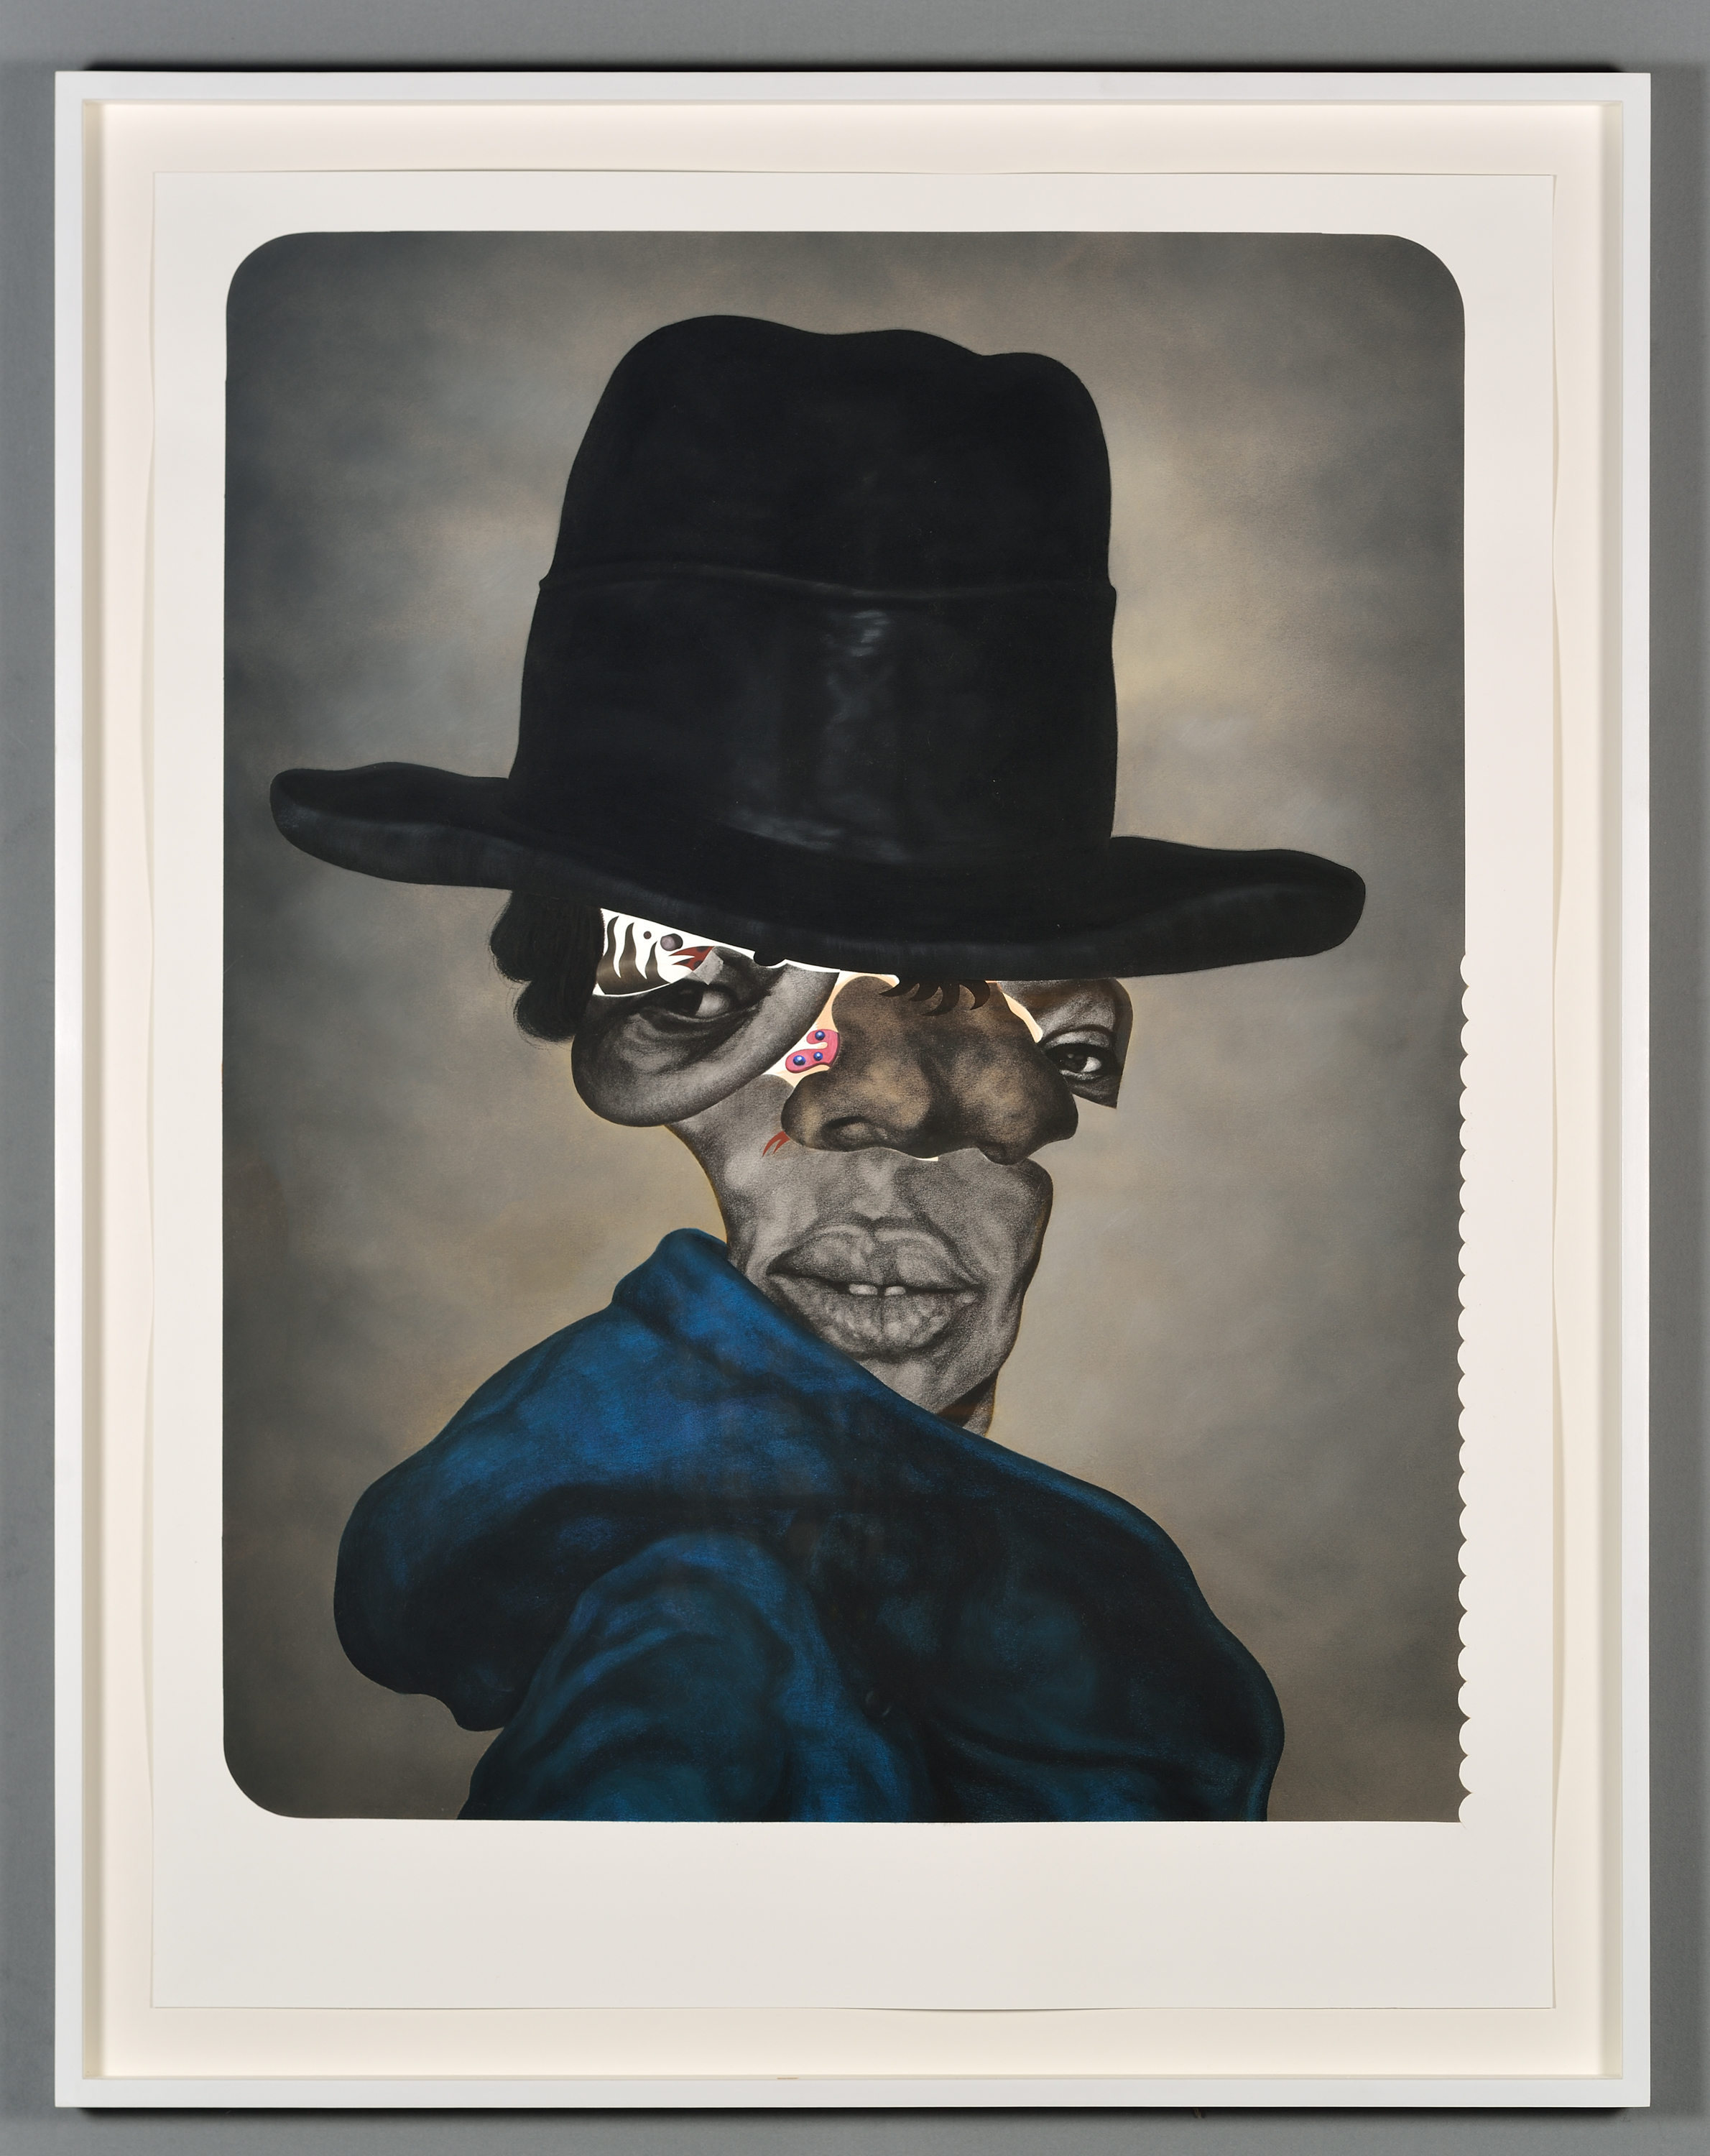 Nathaniel Mary Quinn, <em>First </em><em>and</em><em> Fifteenth</em>, 2016. Black charcoal, gouache, soft pastel, oil pastel on Coventry Vellum paper. 50 x 38 inches. Collection of Doreen Chambers and Philippe Monrougie. Image courtesy of the artist and Rhona Hoffman Gallery. Photography by Alex Yuzdon.